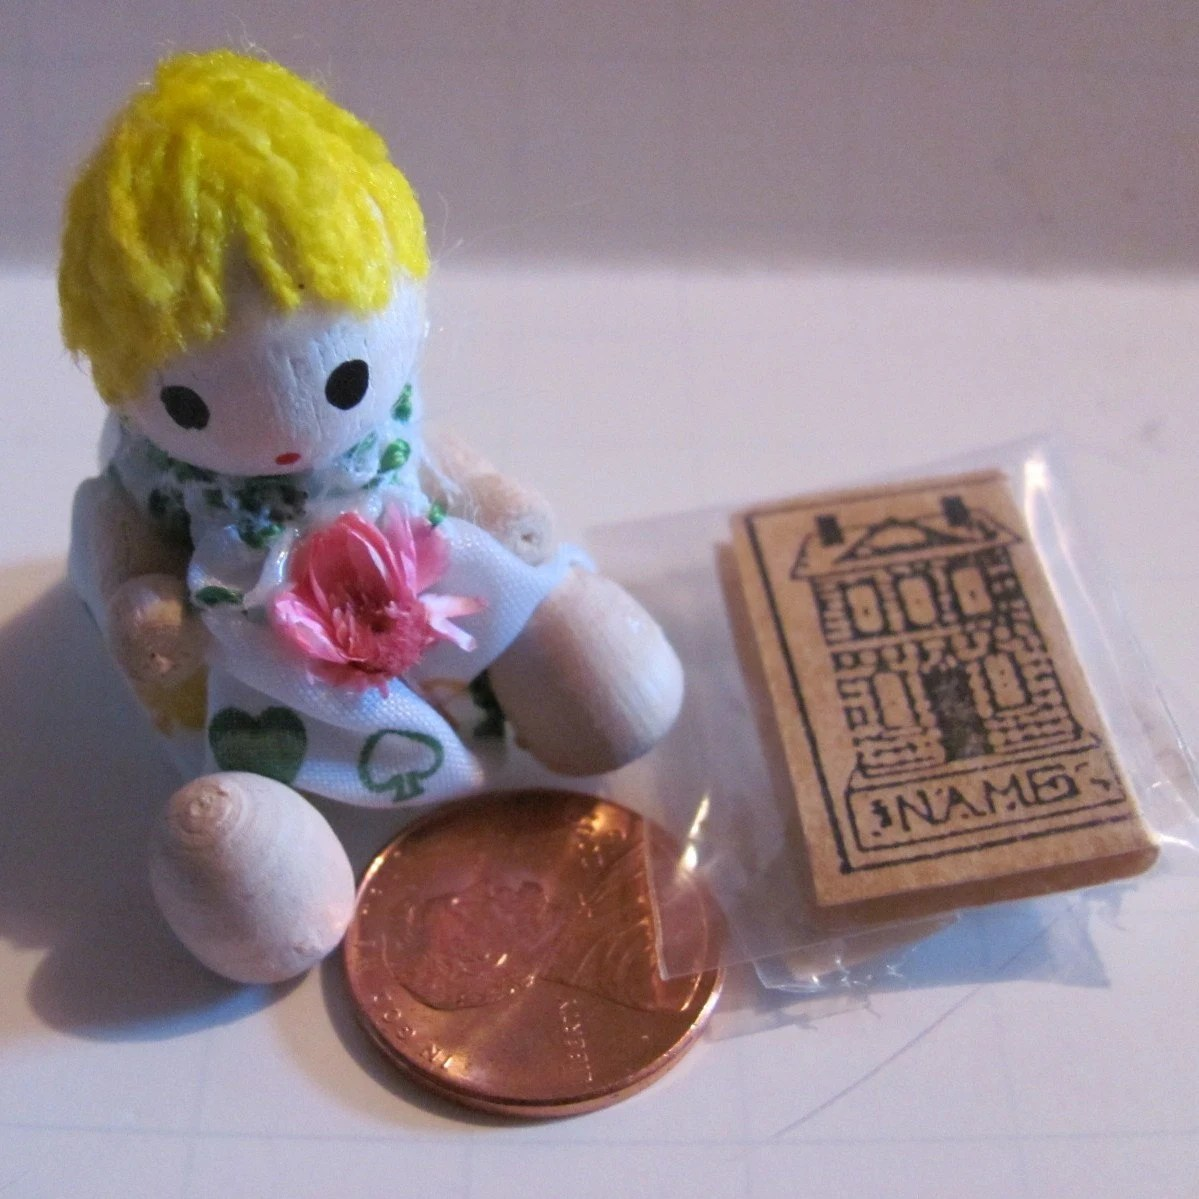 Minature Doll and Book - NewAgain